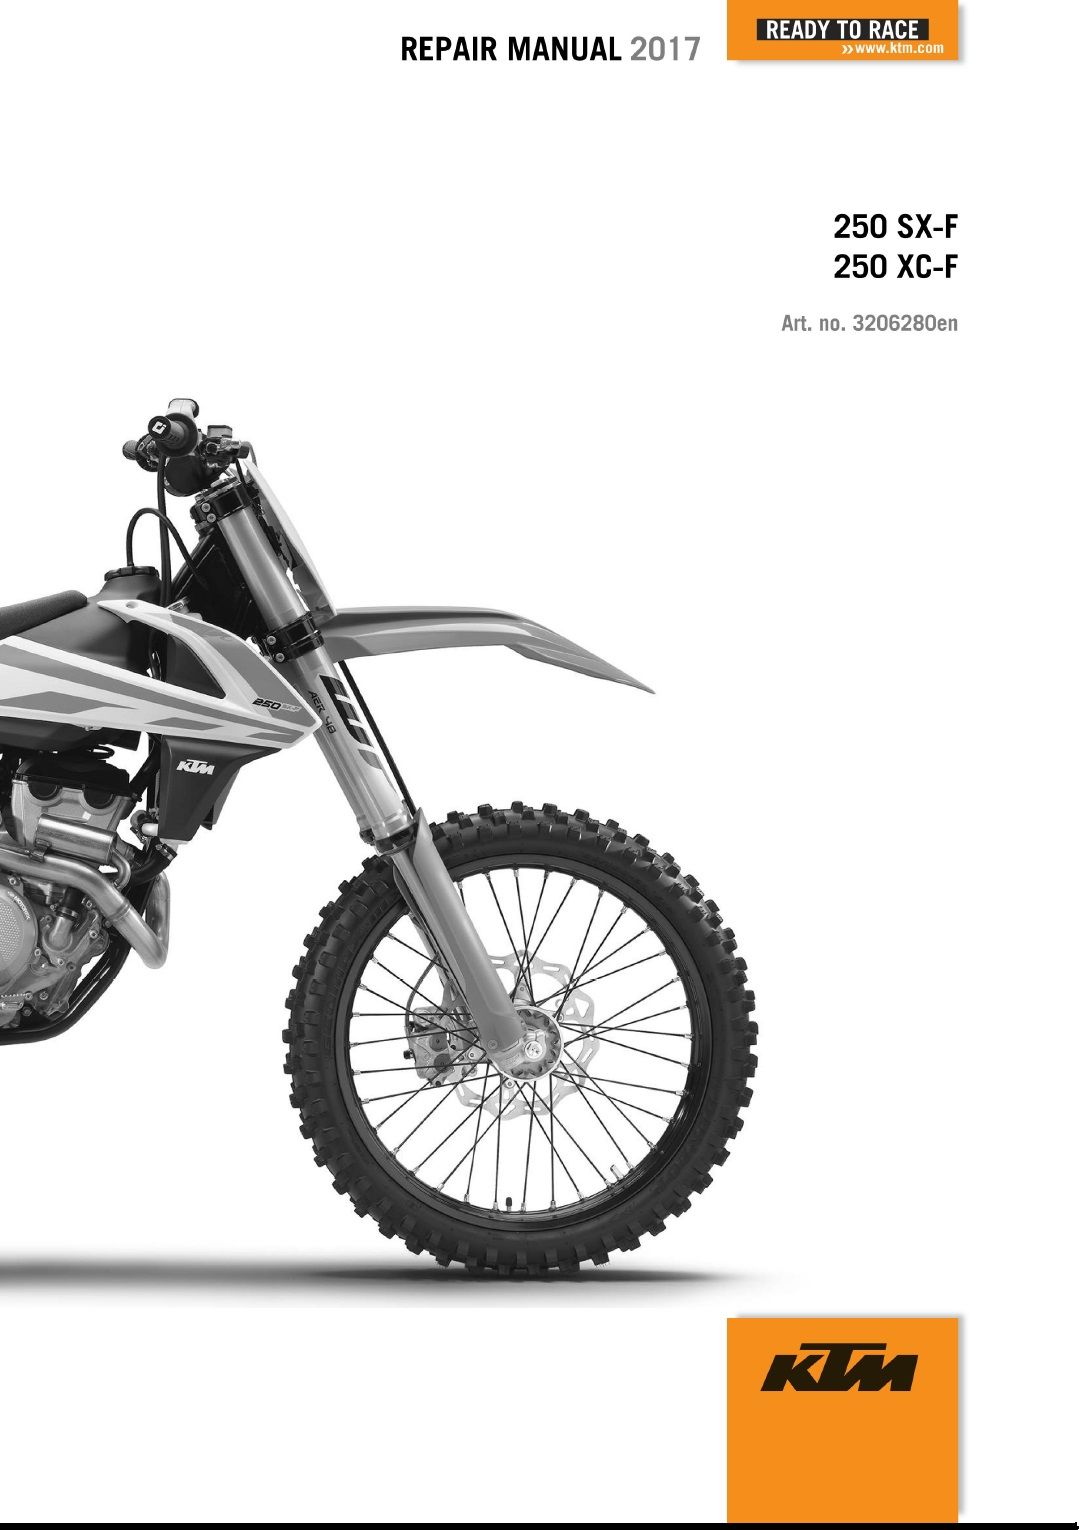 2017 ktm 250 sx f xc f service repair manual 2017 ktm 250 sx f xc f rh pinterest co uk ktm 350 sxf service manual ktm 350 sxf motorcycle service & repair manual 2011